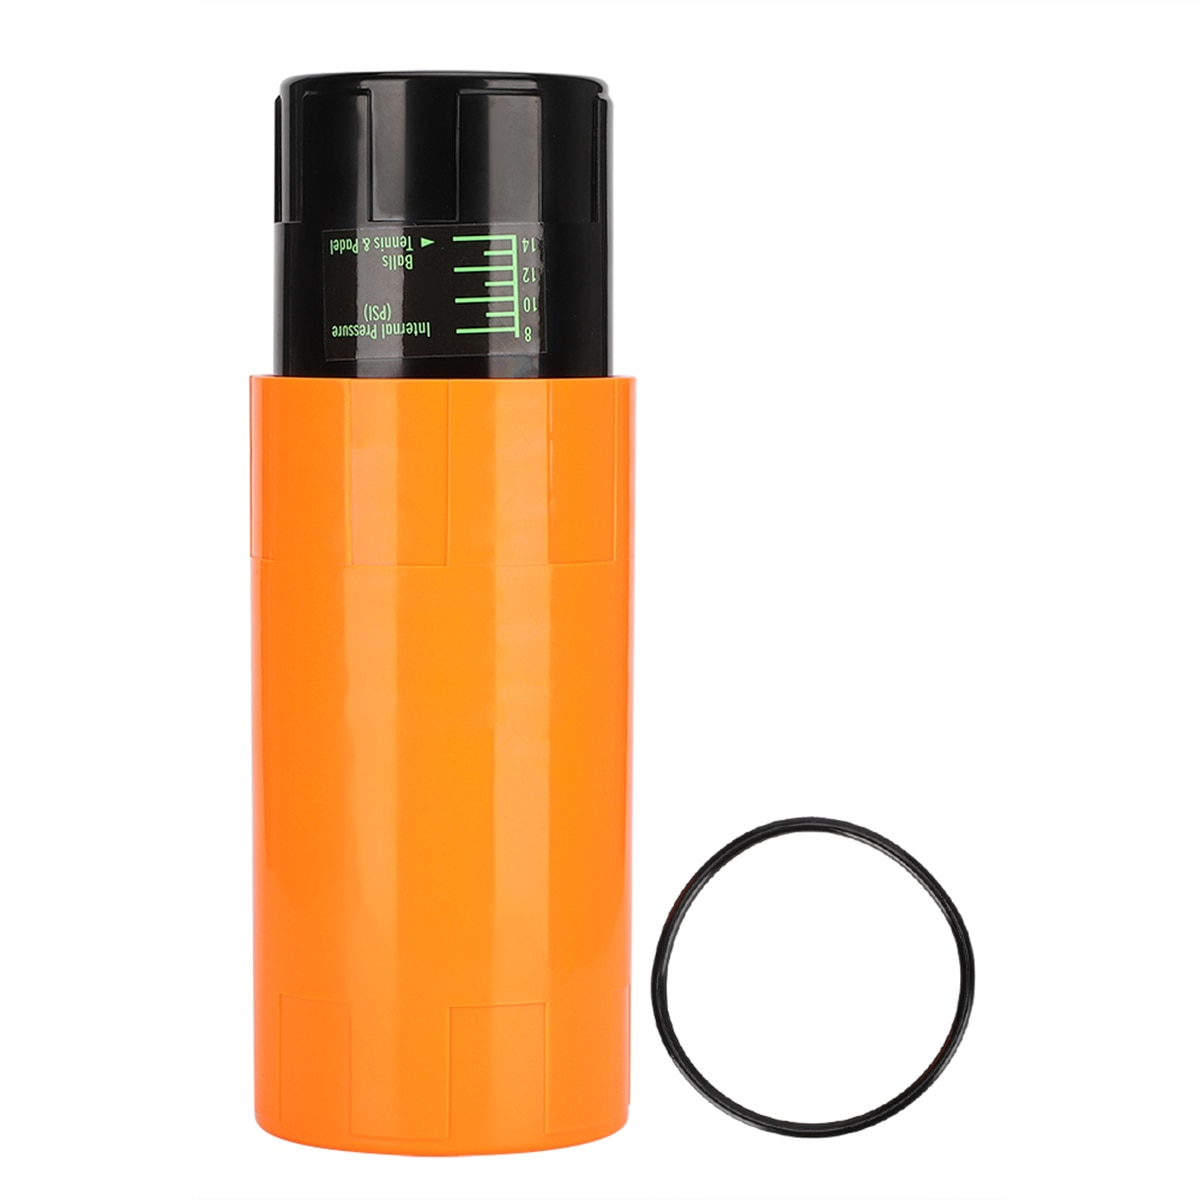 Tennis Ball Box Pressure Repairing Storage Can Container Sports Pressure Maintaining Accessories Tennis Protective Cover